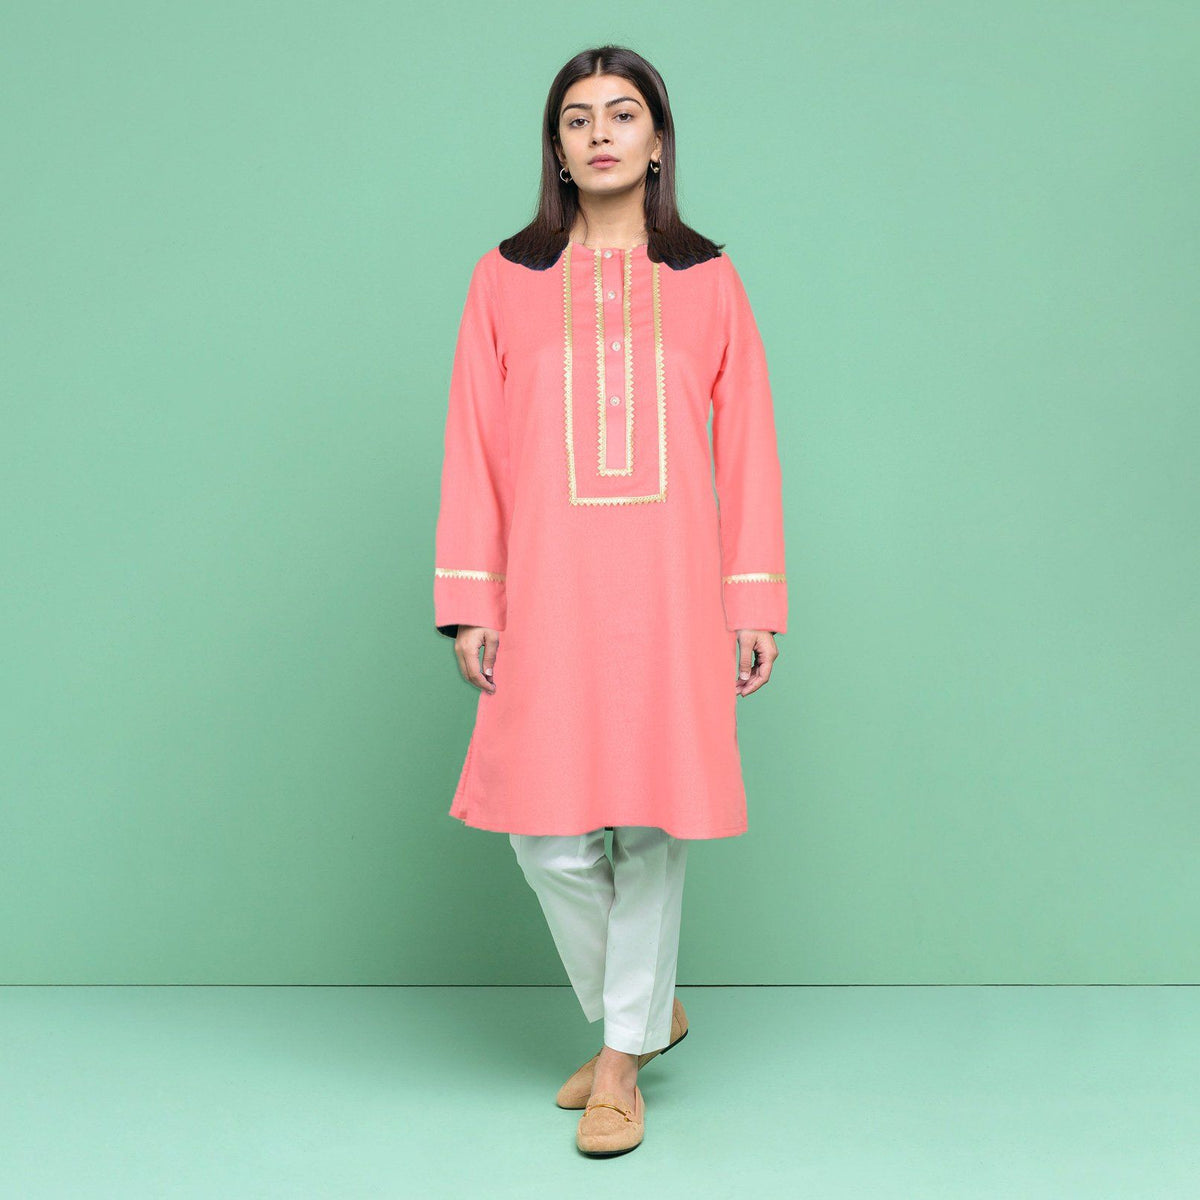 Safina Women's Exquisite Style Stitched Kurti Women's Stitched Kurti Bohotique S